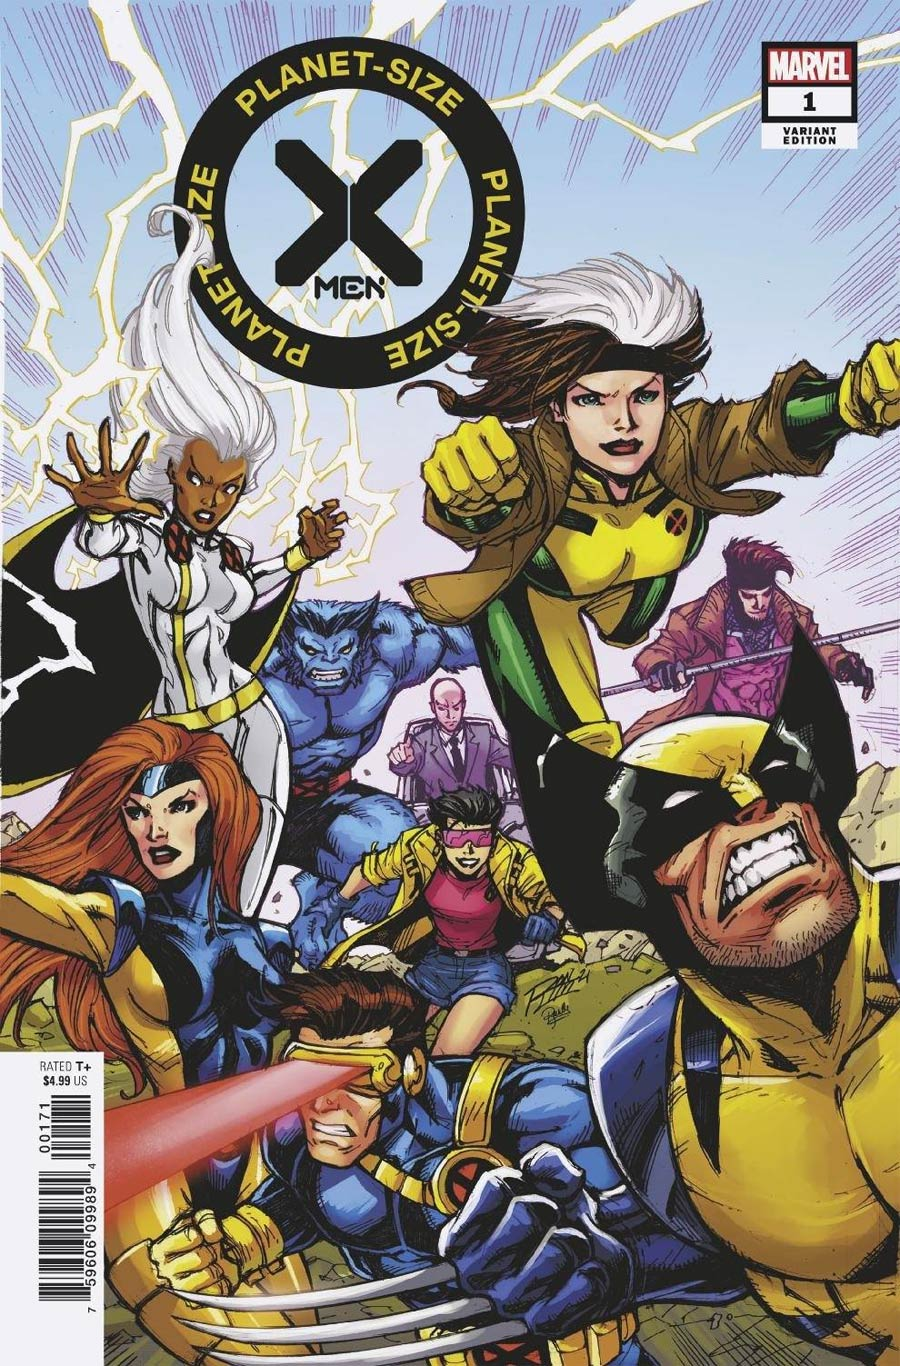 Planet-Size X-Men #1 (One Shot) Cover C Variant Ron Lim X-Men 90s Cover (Hellfire Gala Tie-In)